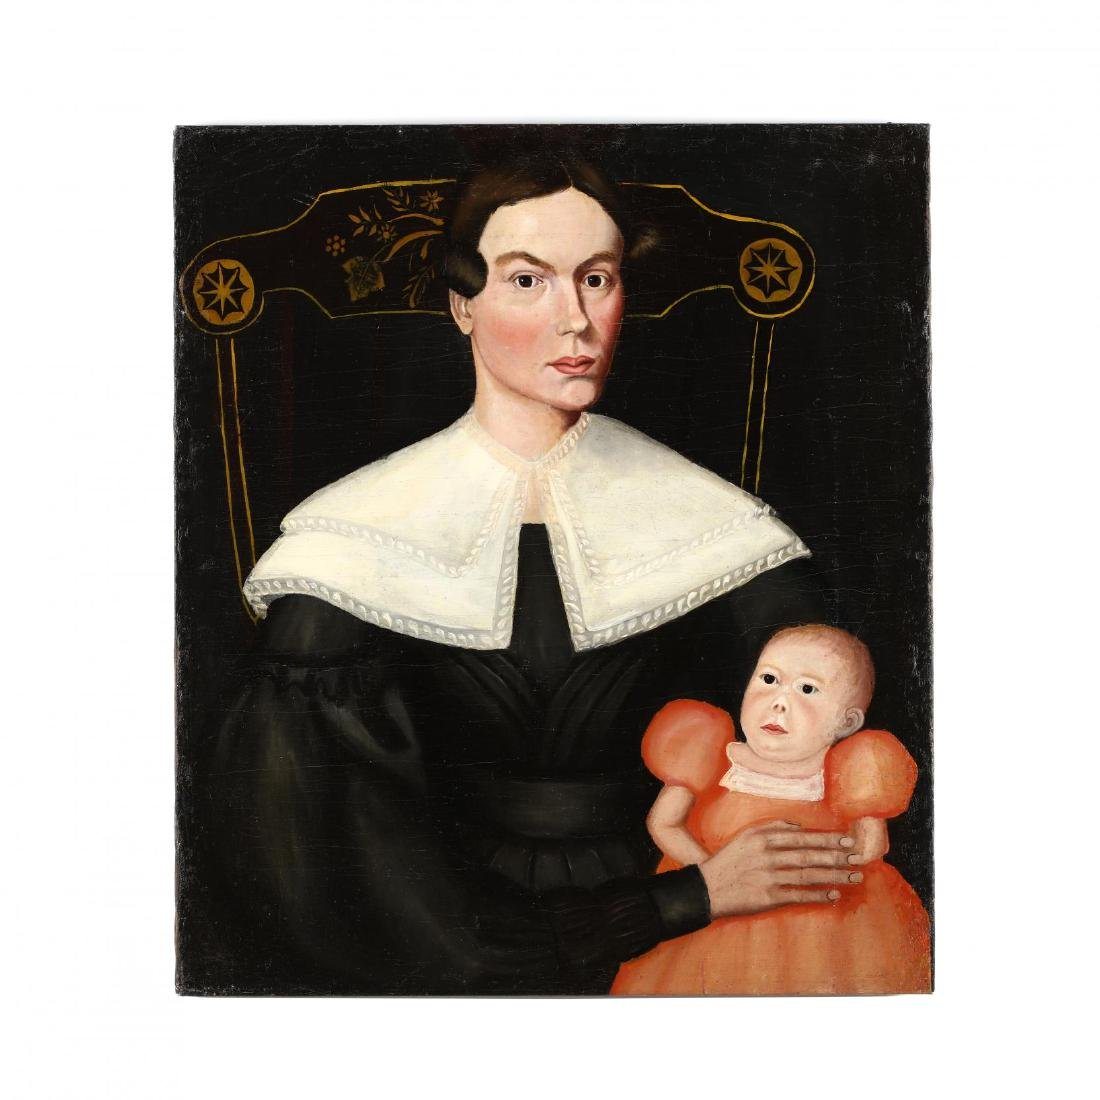 Antique American Folk Art Portrait of a Mother and